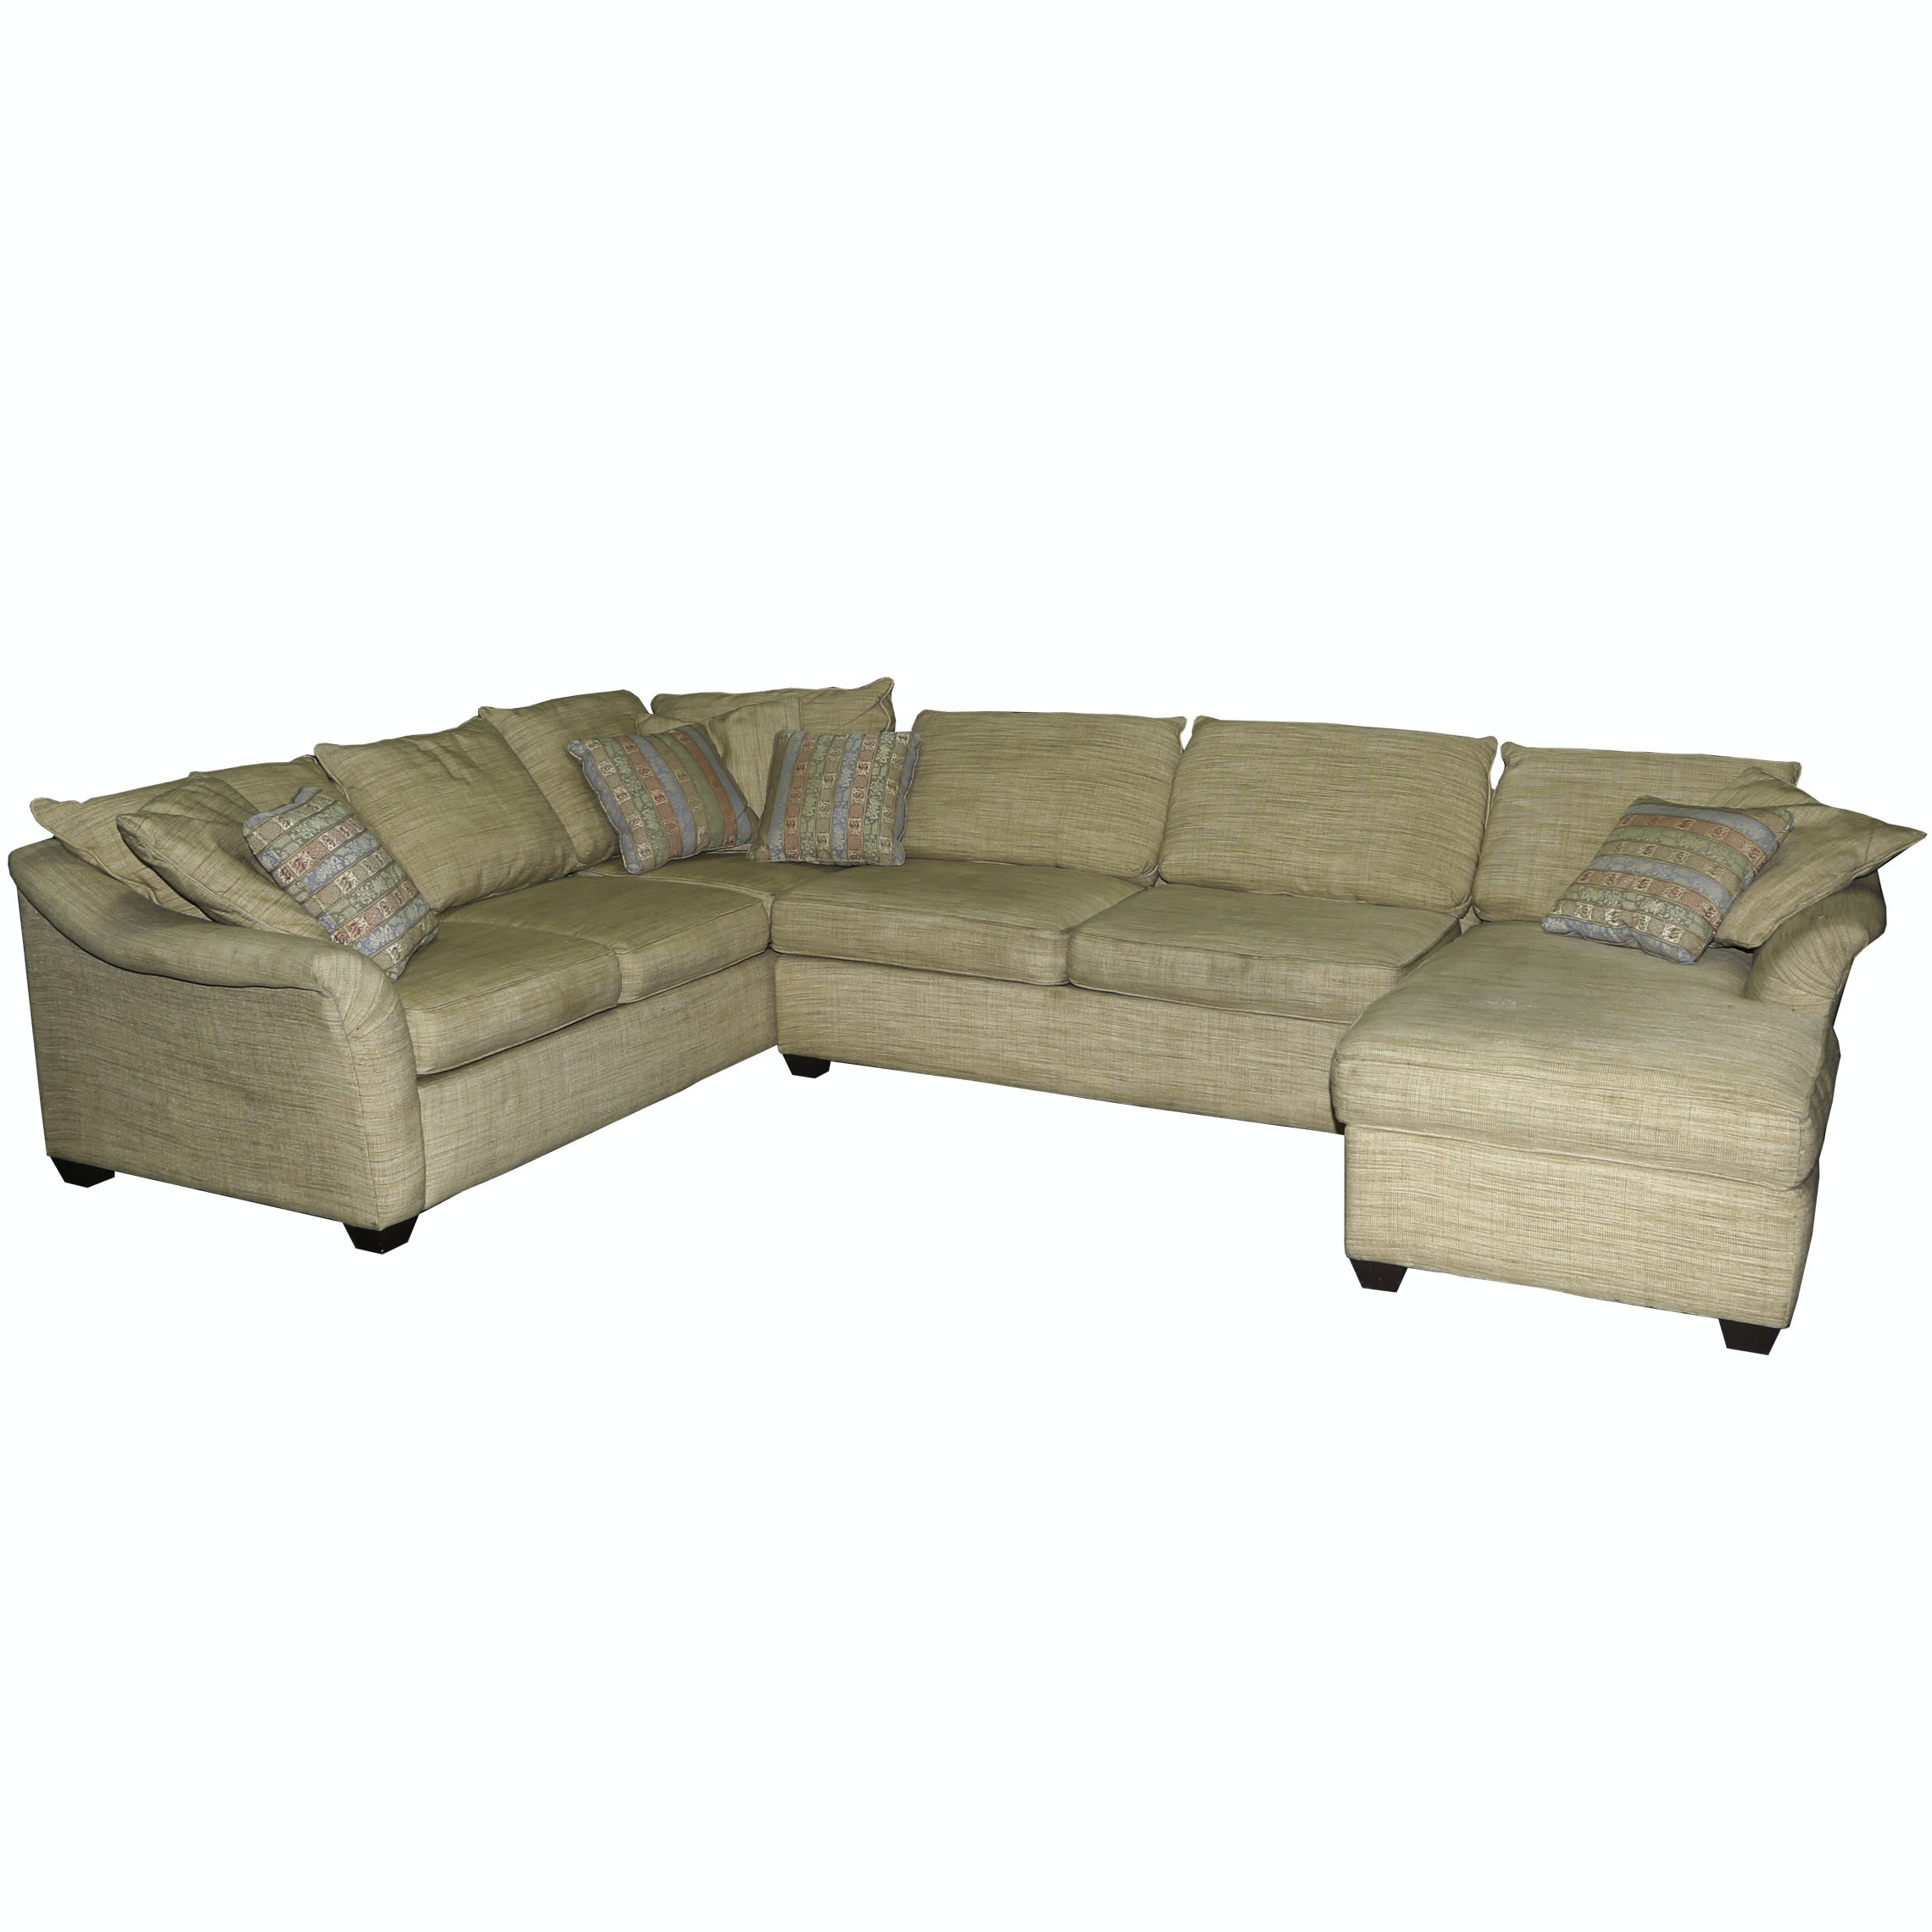 Charmant Contemporary Sectional Sofa By Rowe Furniture ...